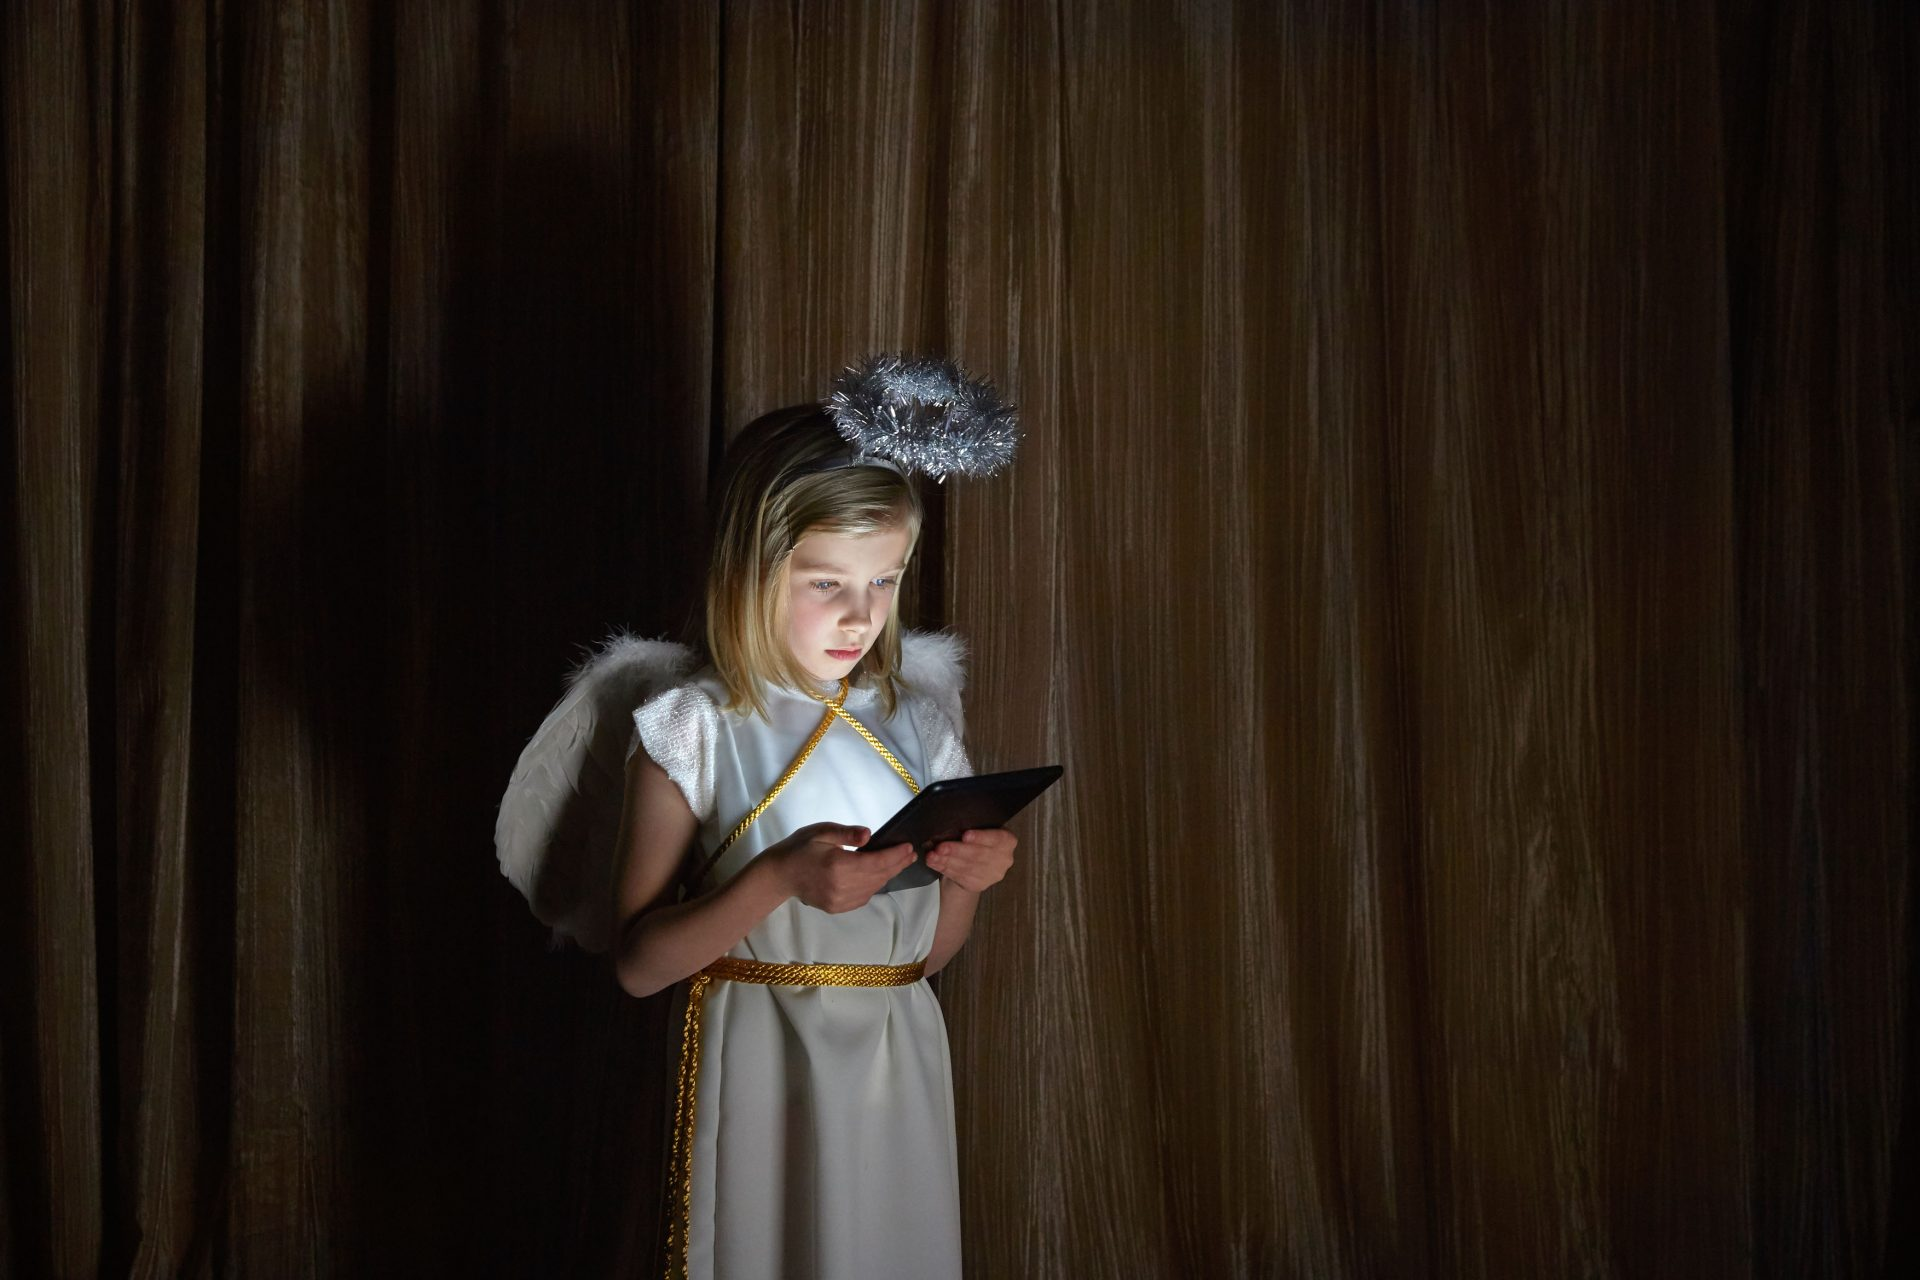 – Shaw & Shaw Photography – Shaw and Shaw Photographers Manchester – advertising photographers – graphic image – Angel – girl dressed as an angel looking at an iPad – Christmas play – Nativity play